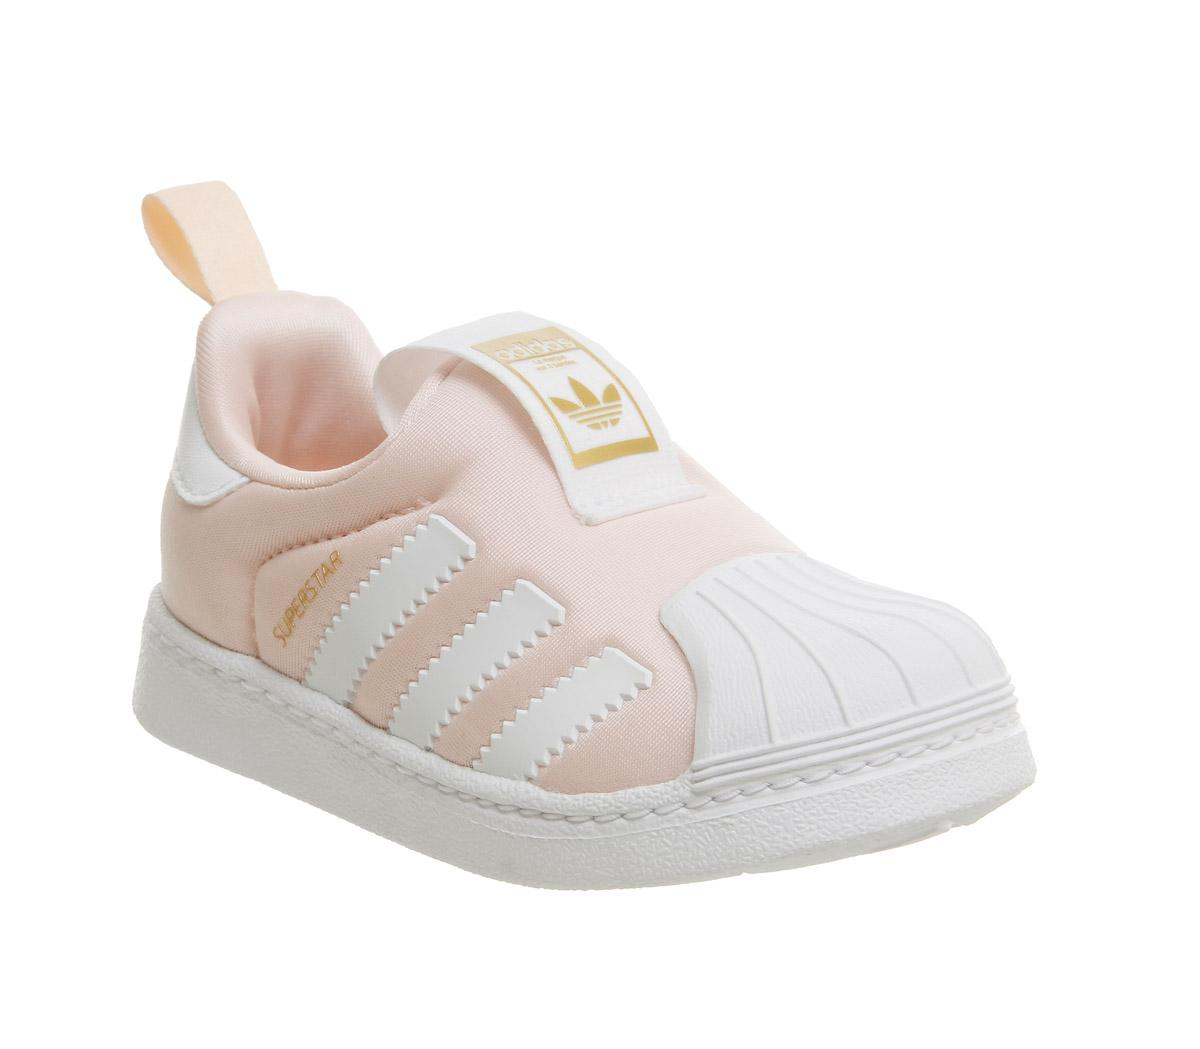 adidas Superstar 360 Inf 3-9 Clear